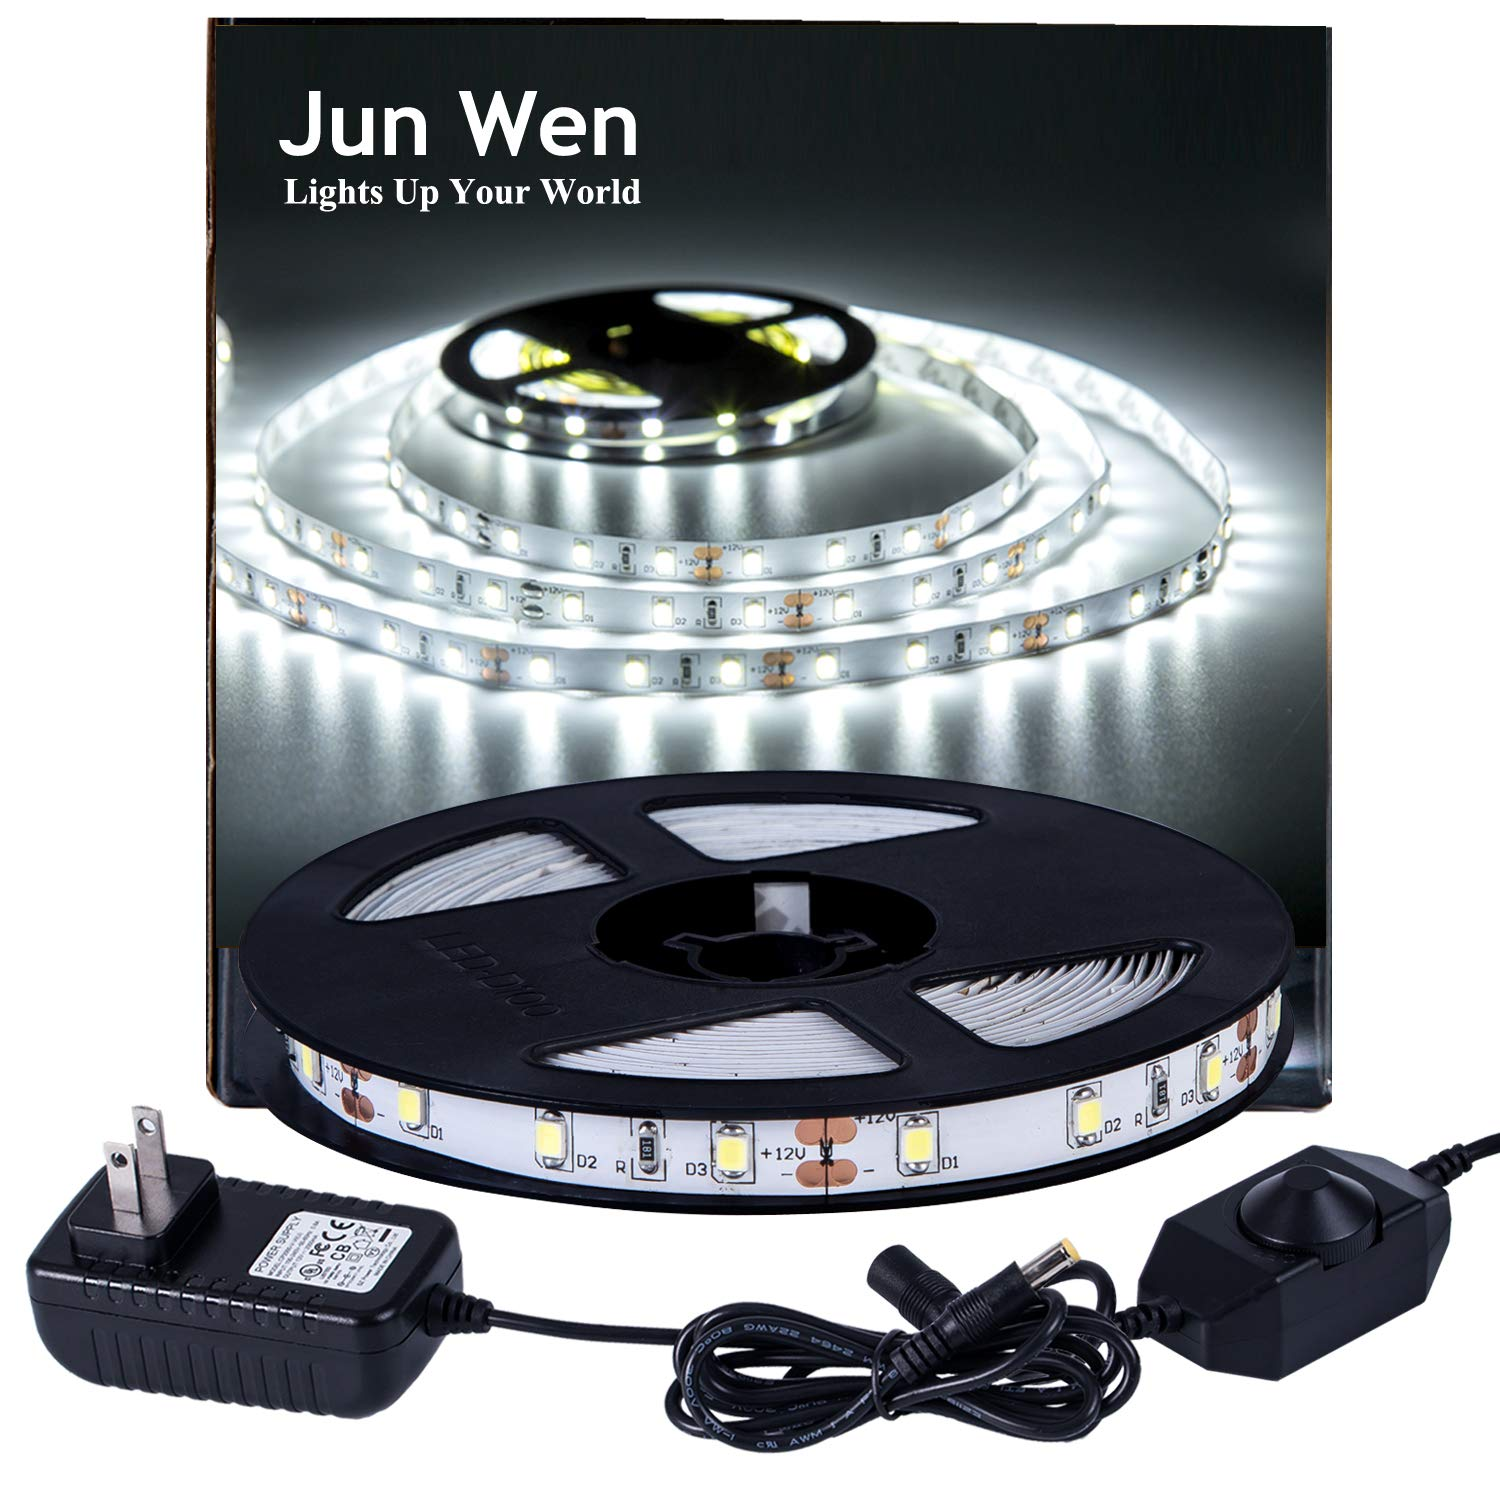 LED Strip Lights 300 Units SMD 2835 Rope Lights 5M/16.4 Ft 6000k Non-waterproof LED Tape Ribbon Light with Dimmer and Power Supply Kitchen Under Cabinet Dining Room Bedroom Wedding by JUNWEN